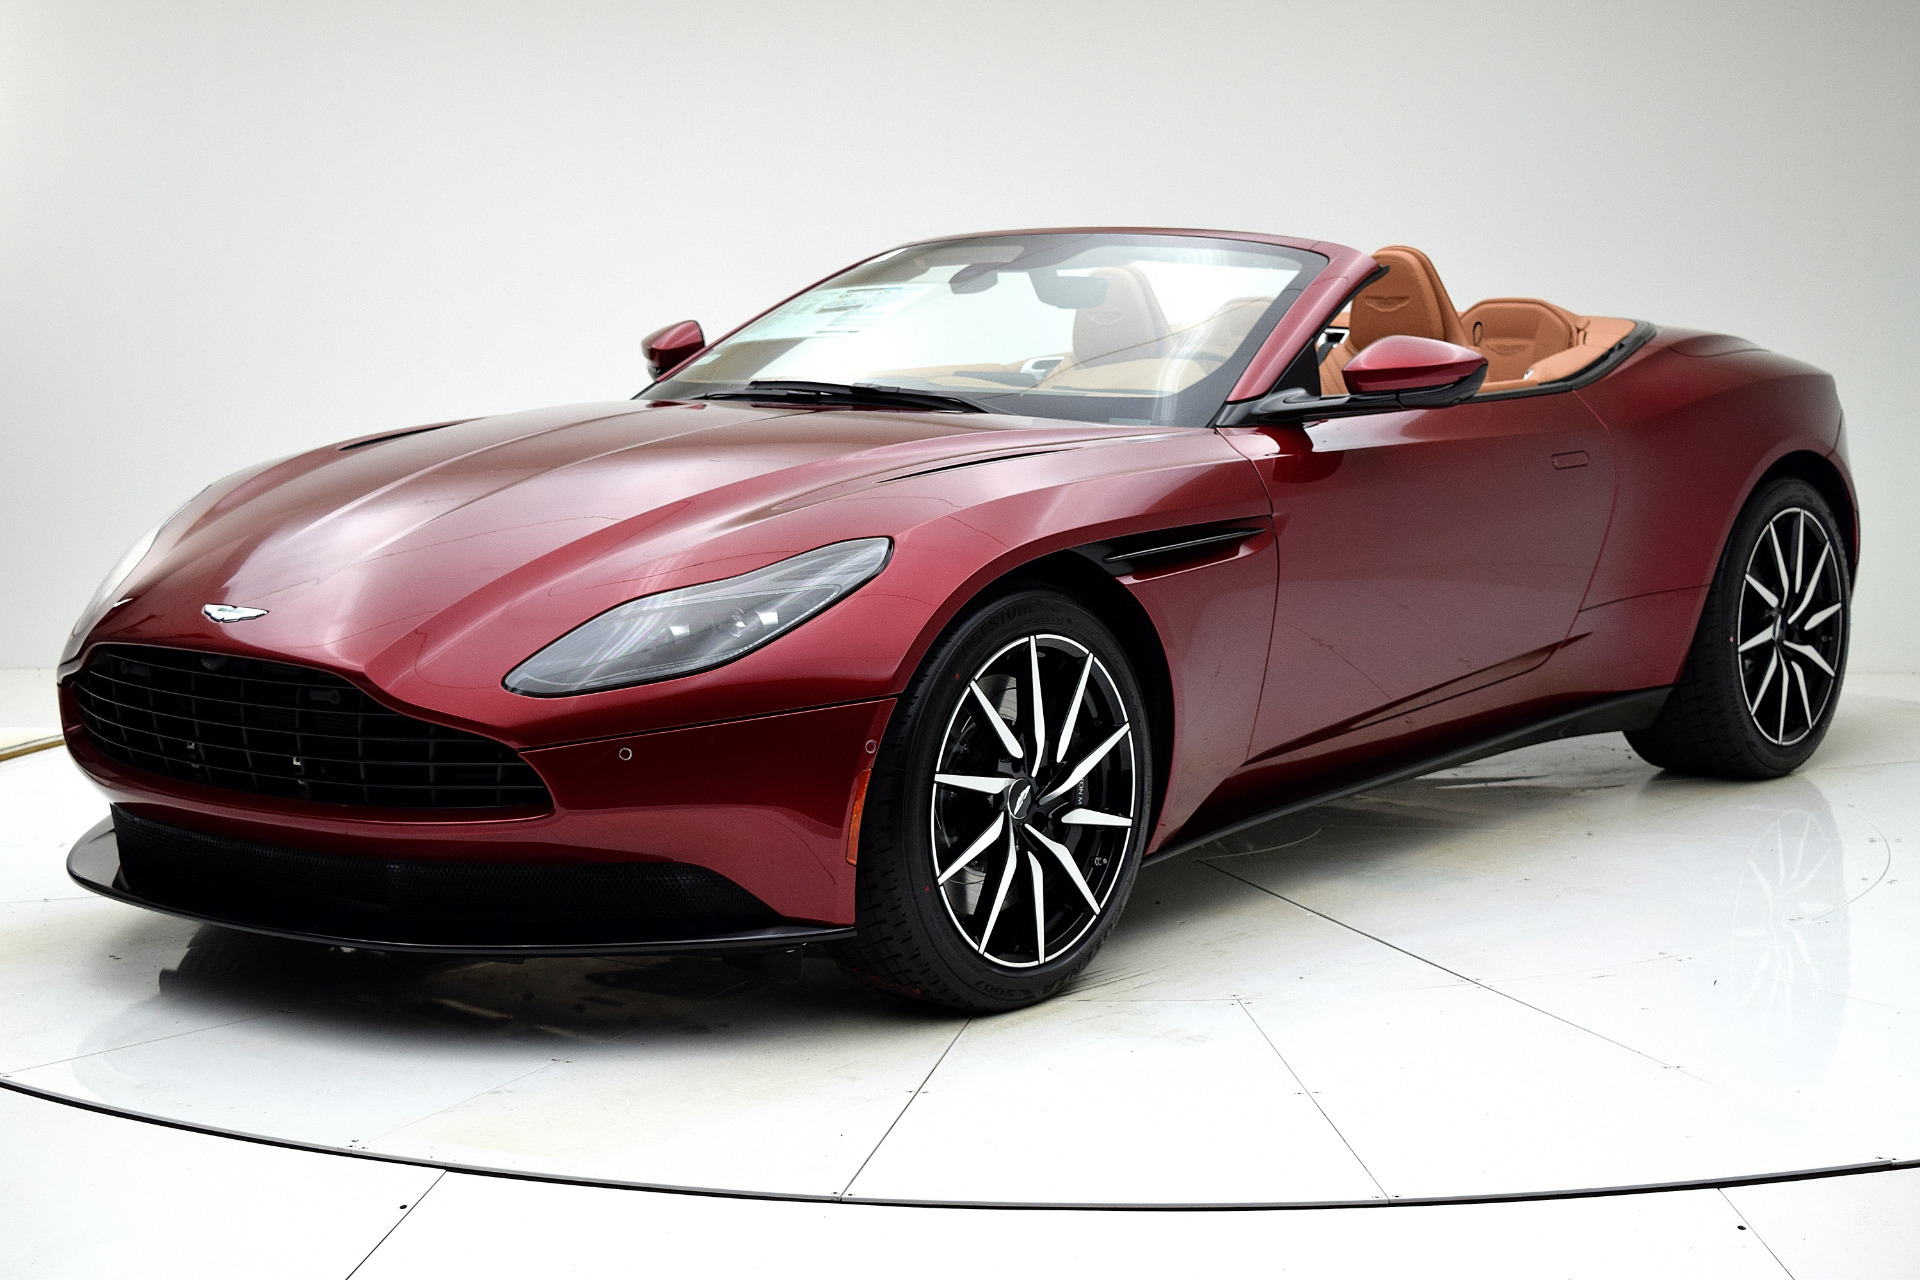 New 2020 Aston Martin DB11 Volante for sale Sold at F.C. Kerbeck Aston Martin in Palmyra NJ 08065 2